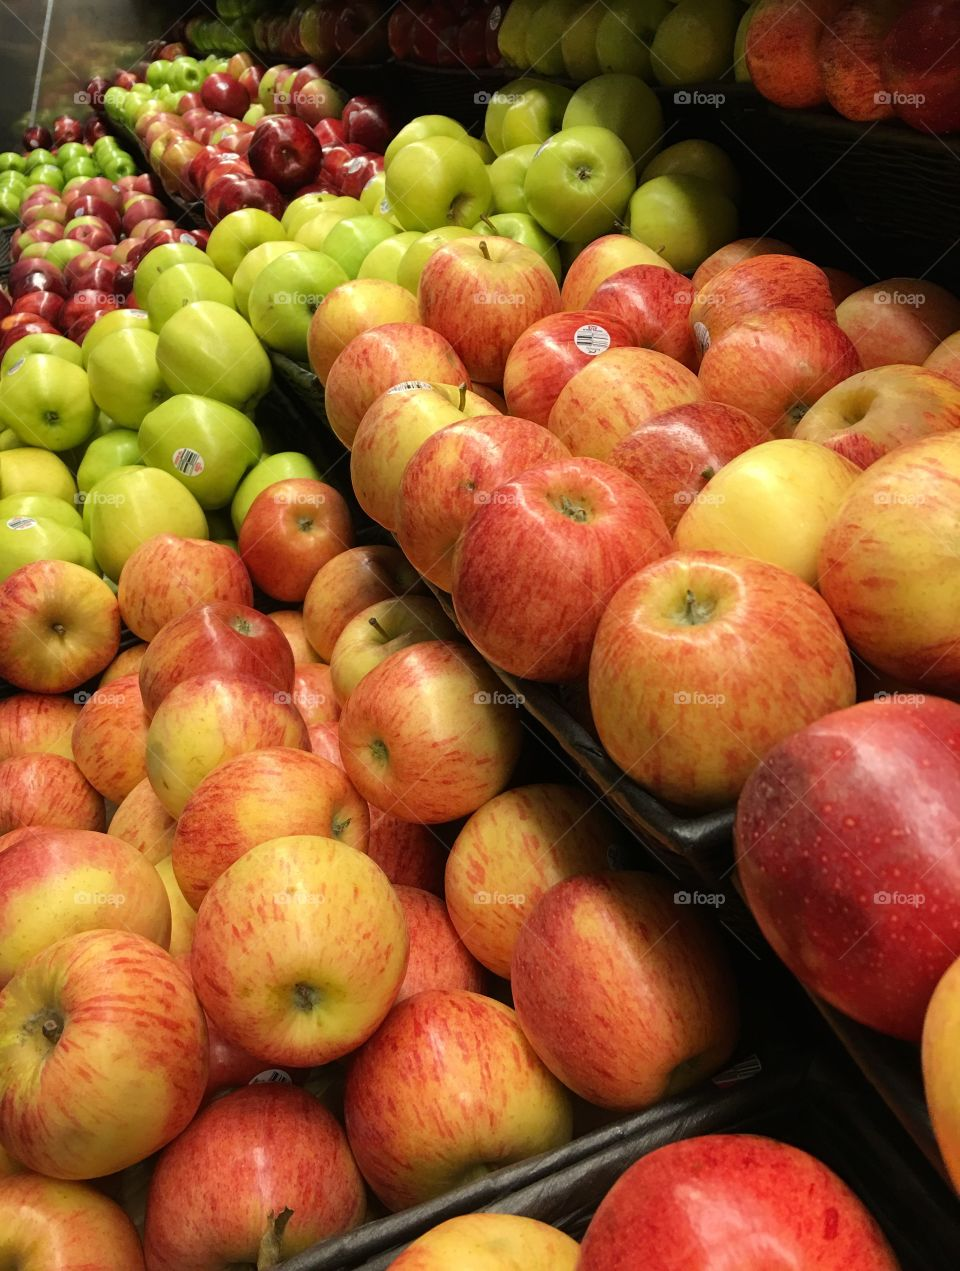 Apples Different Kinds, Different Colors